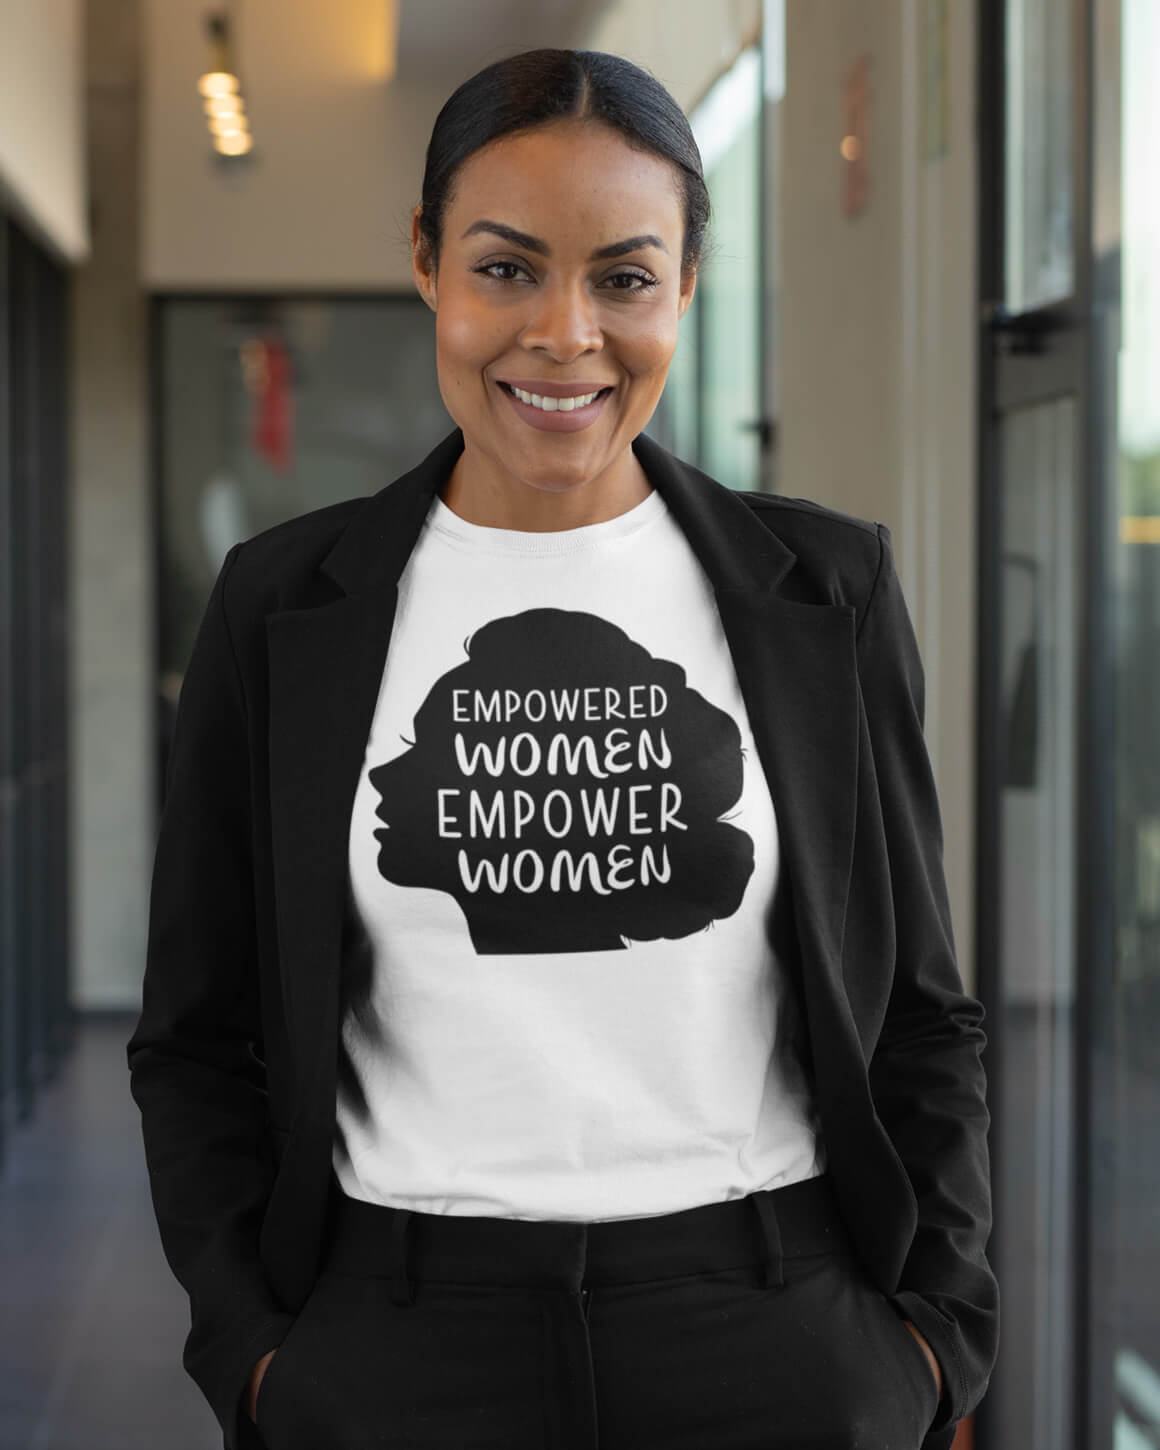 Woman wearing empowered women empower women shirt